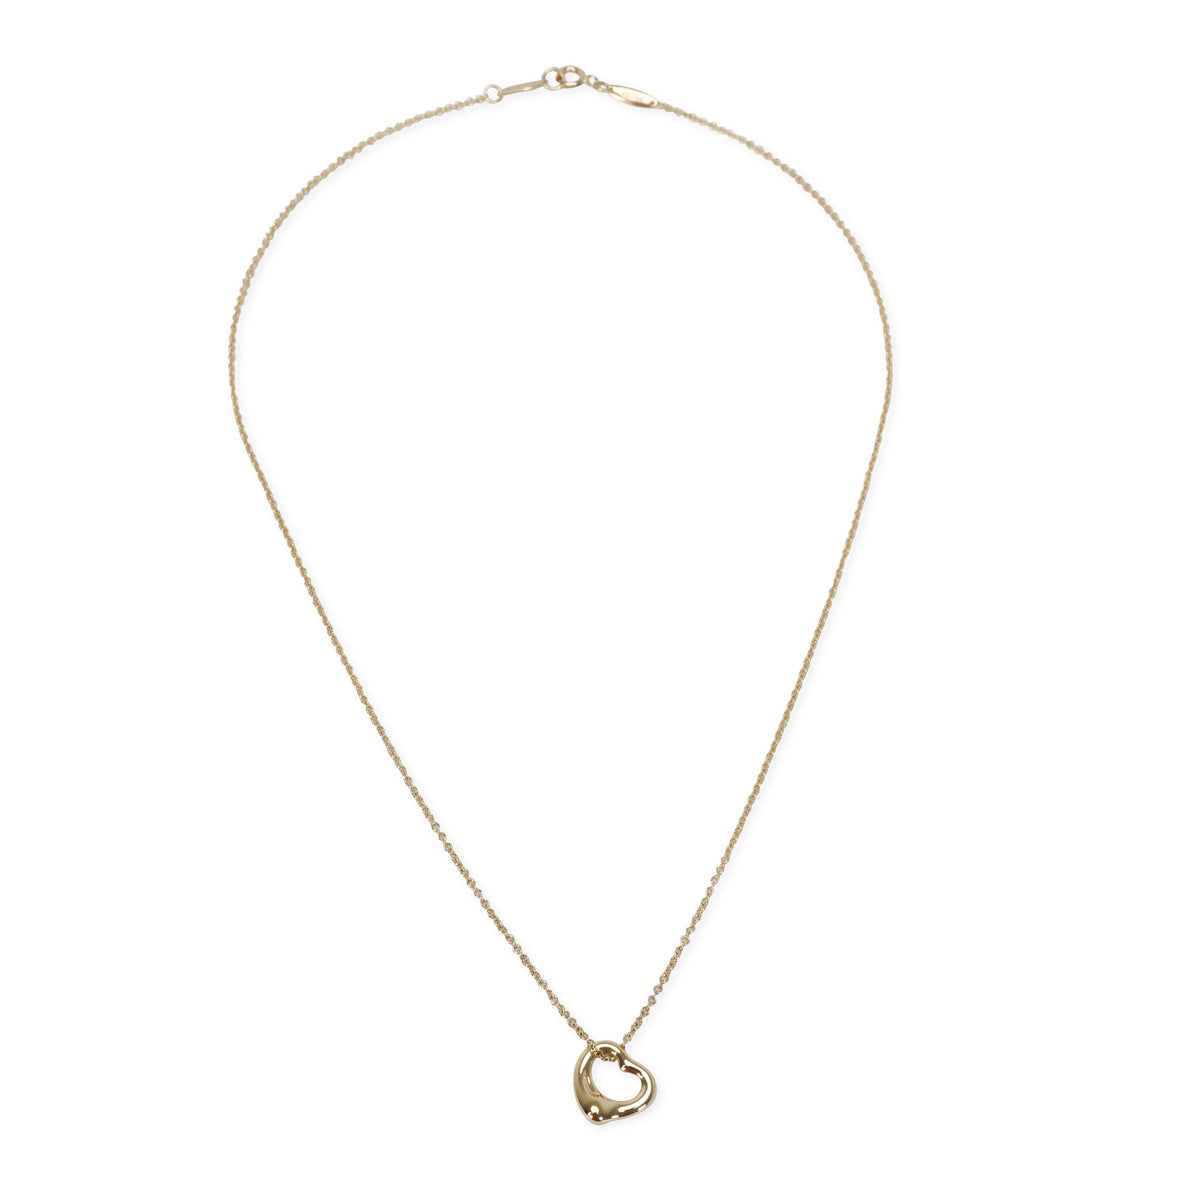 Tiffany & Co. Elsa Peretti Heart Pendant in 18K Yellow Gold